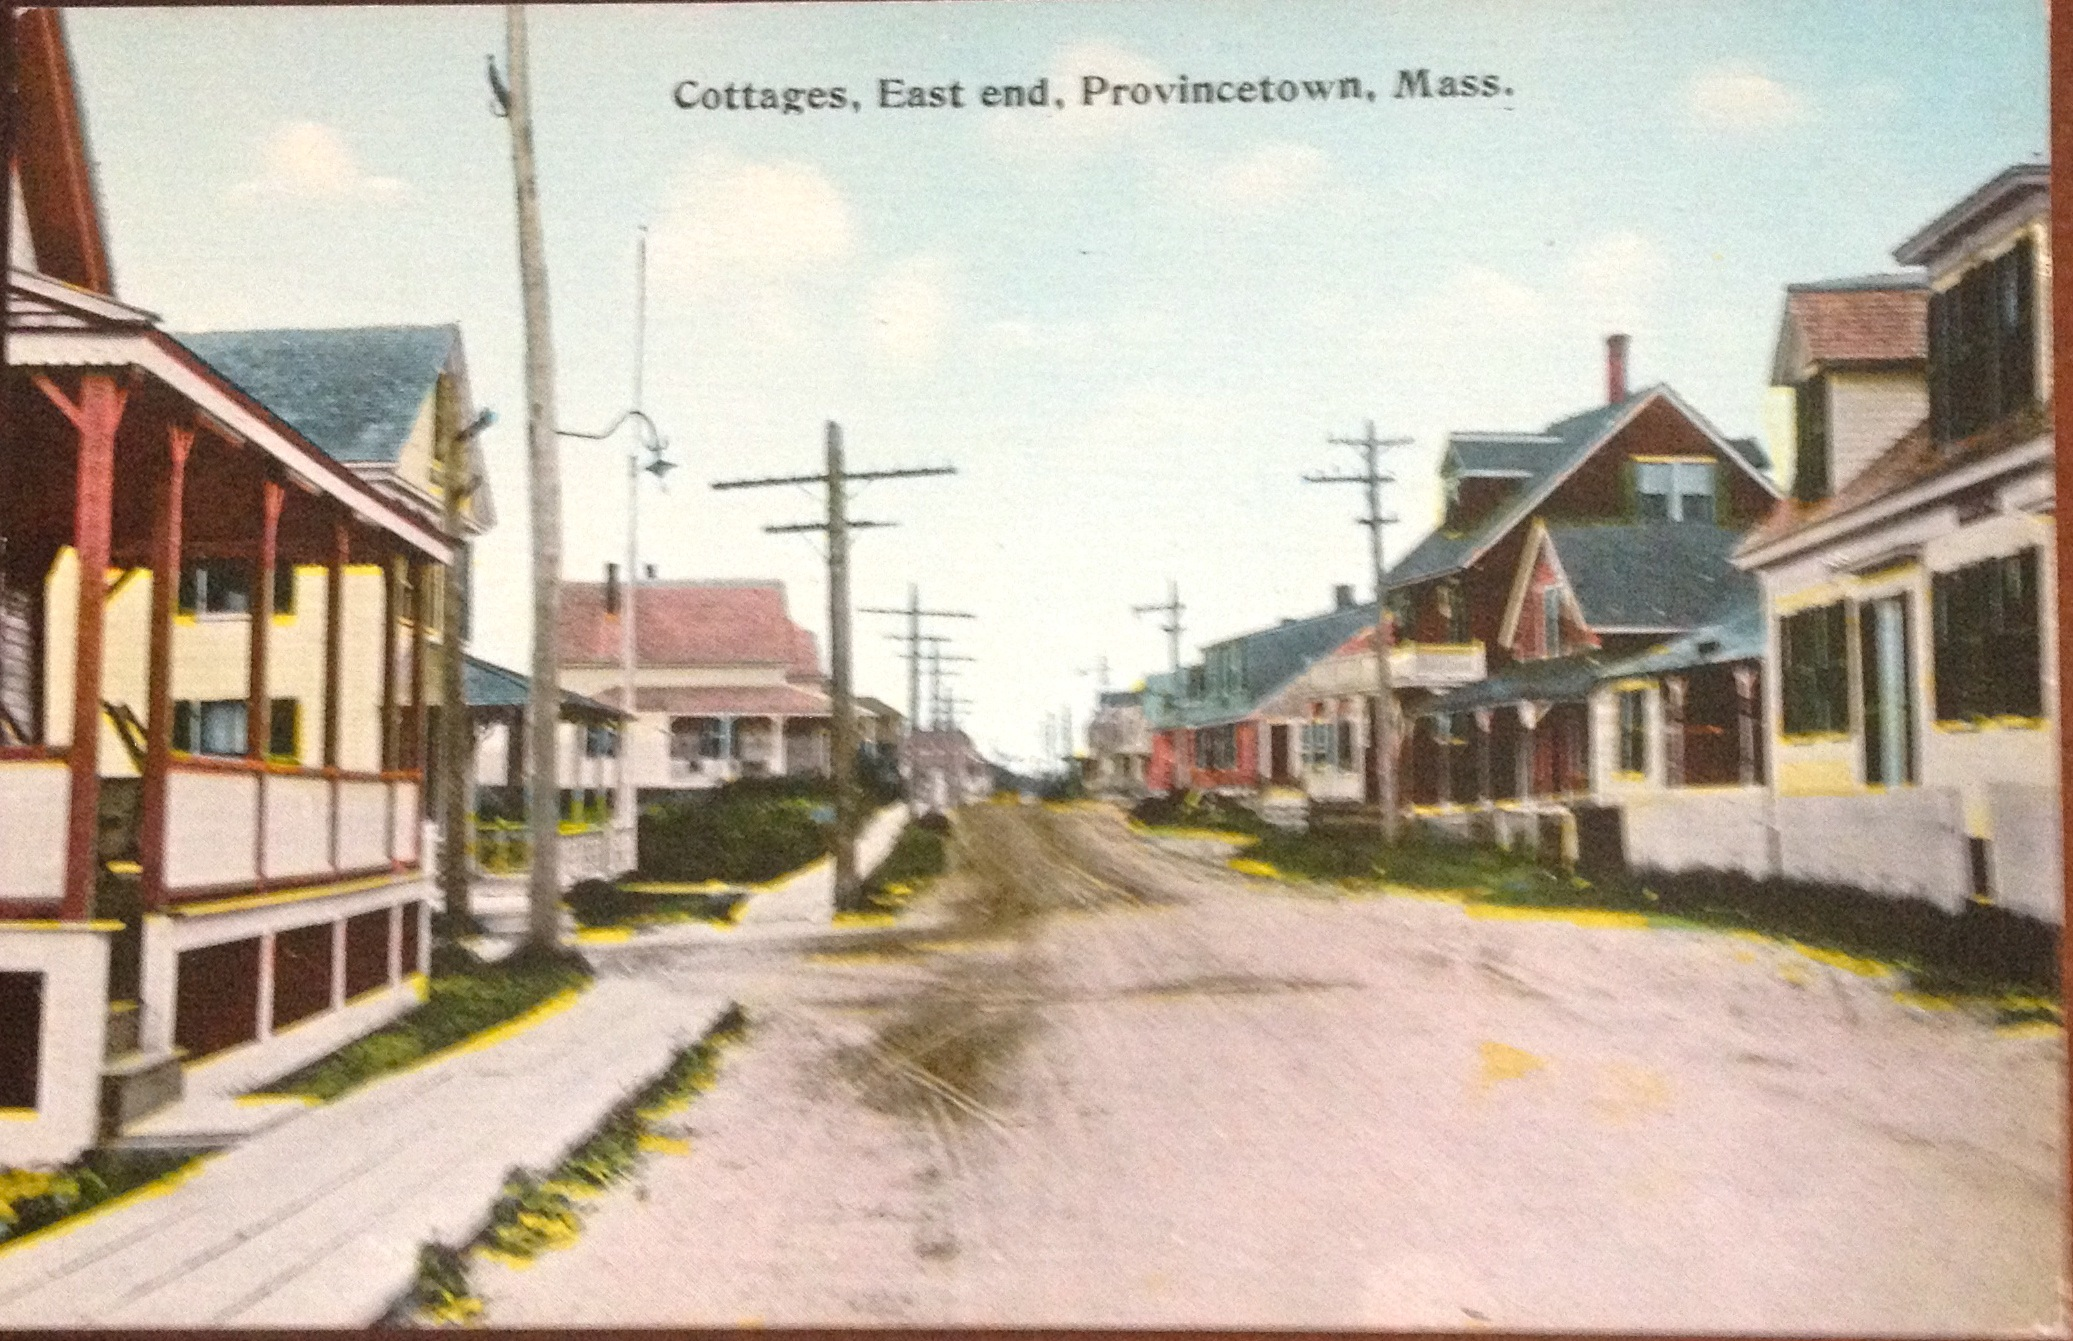 paul street real ma cottages bradford in estate robert provincetown